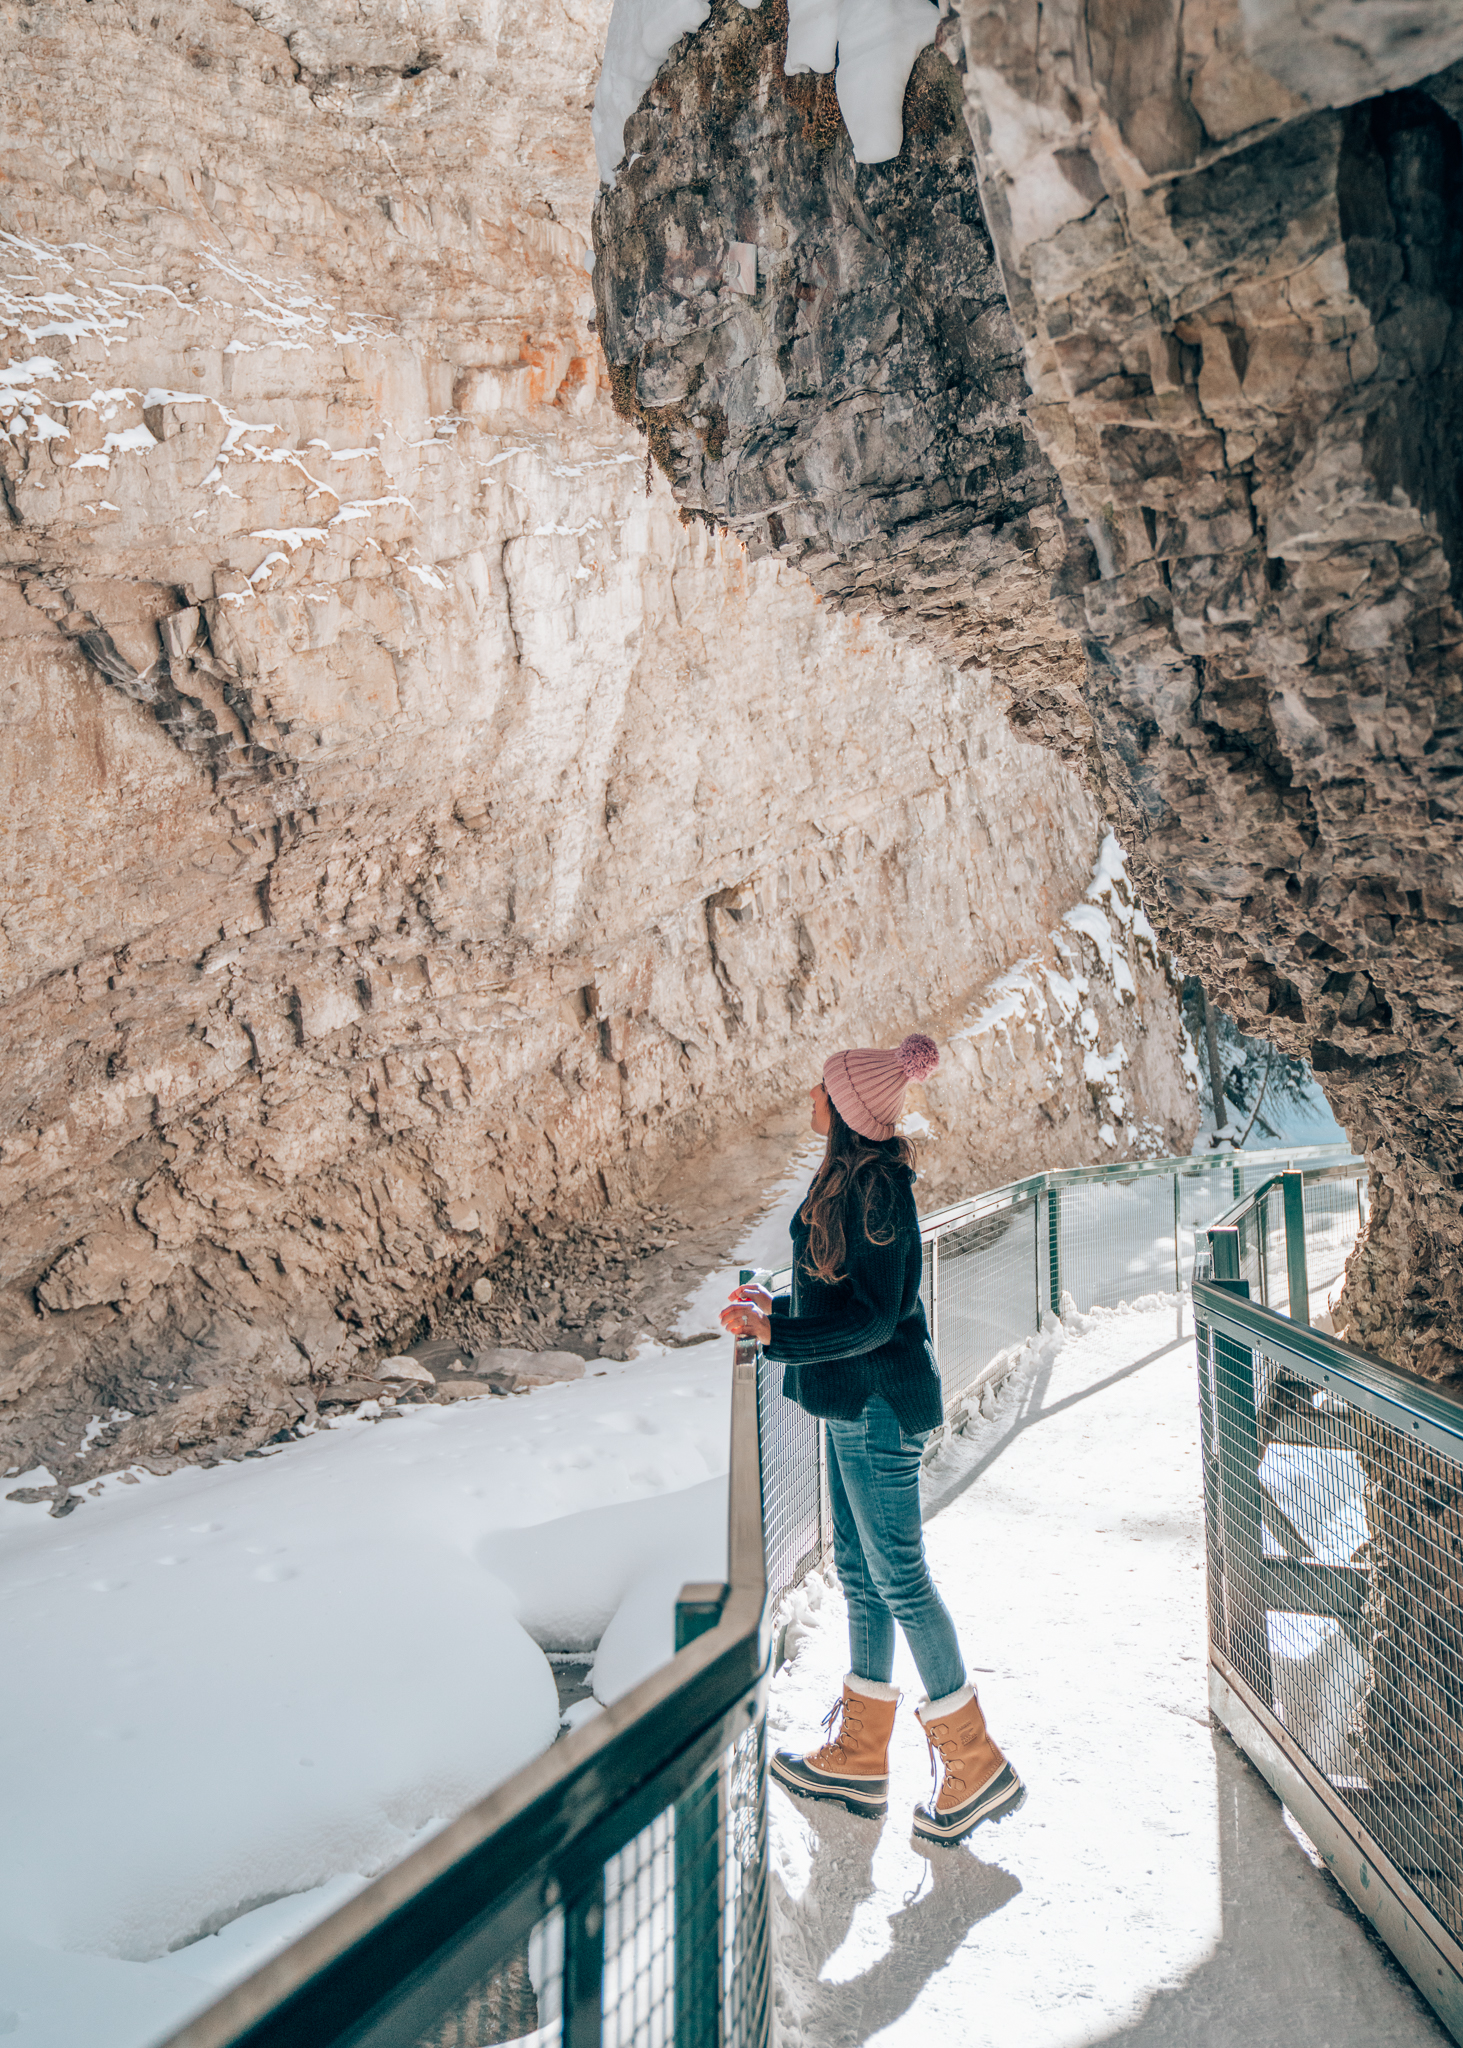 Johnston Canyon Ice Walk, Banff, Alberta